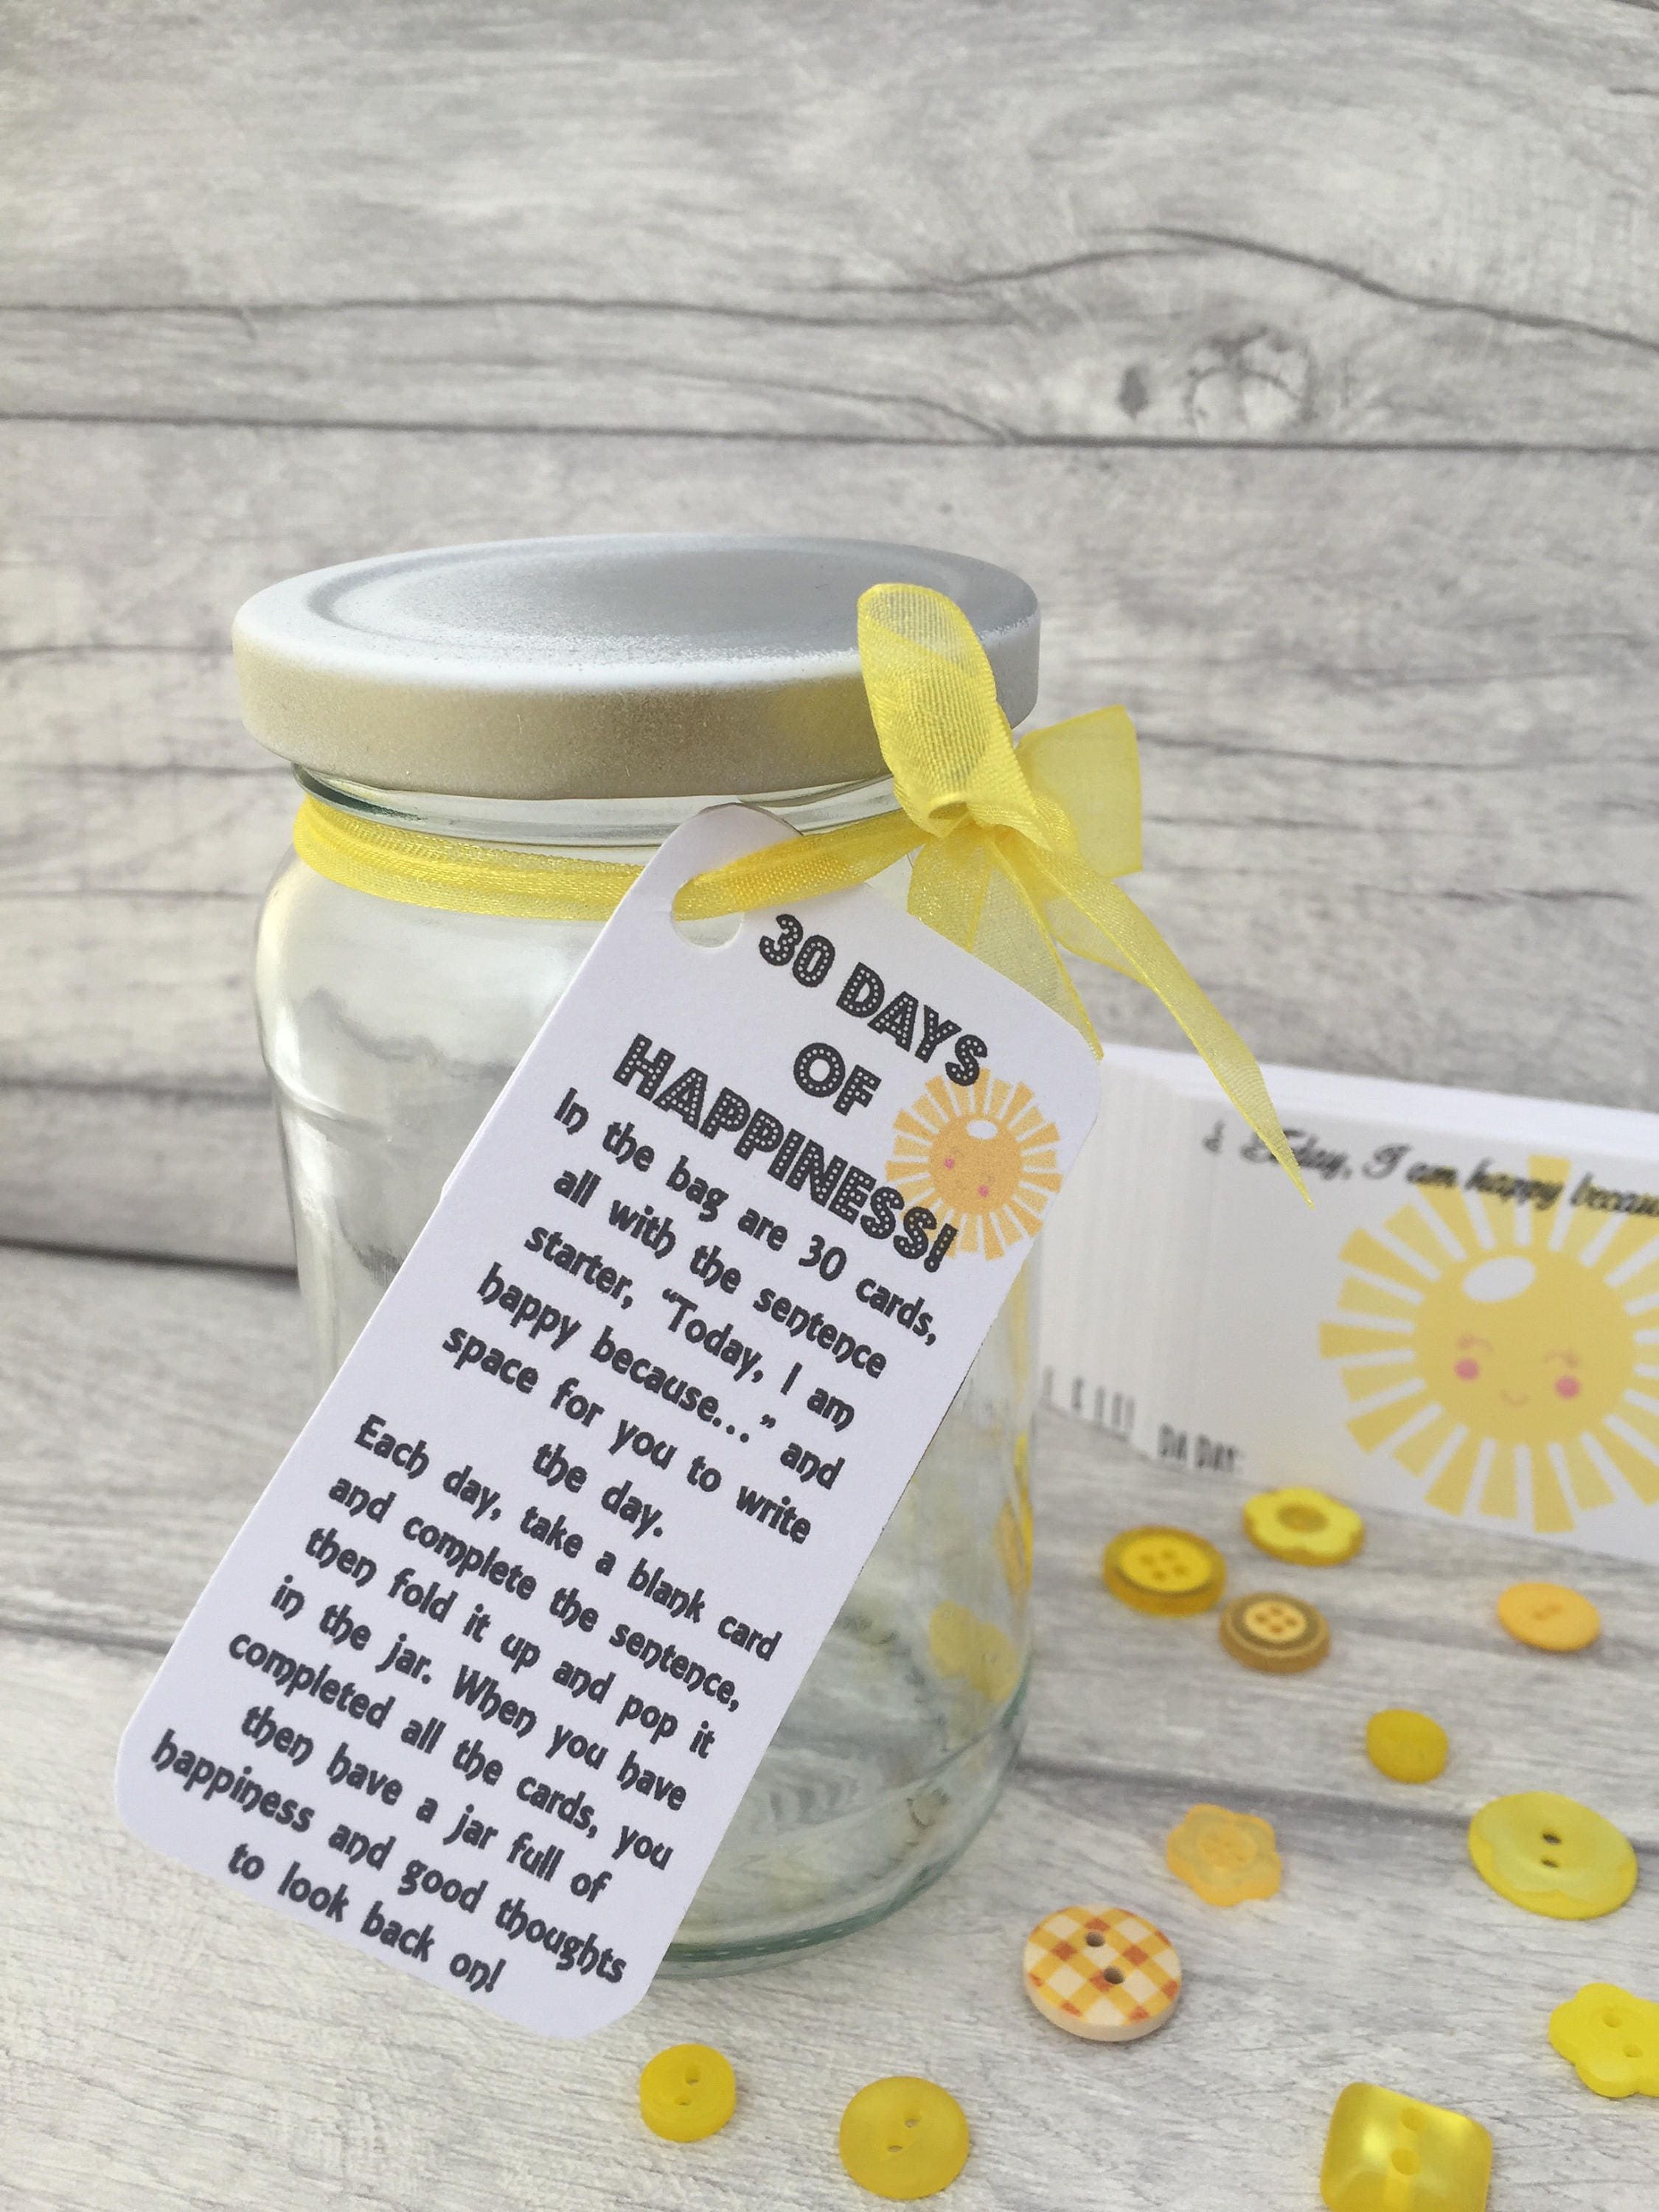 30 Days of Happiness Jam Packed Jars Happy Gift Self